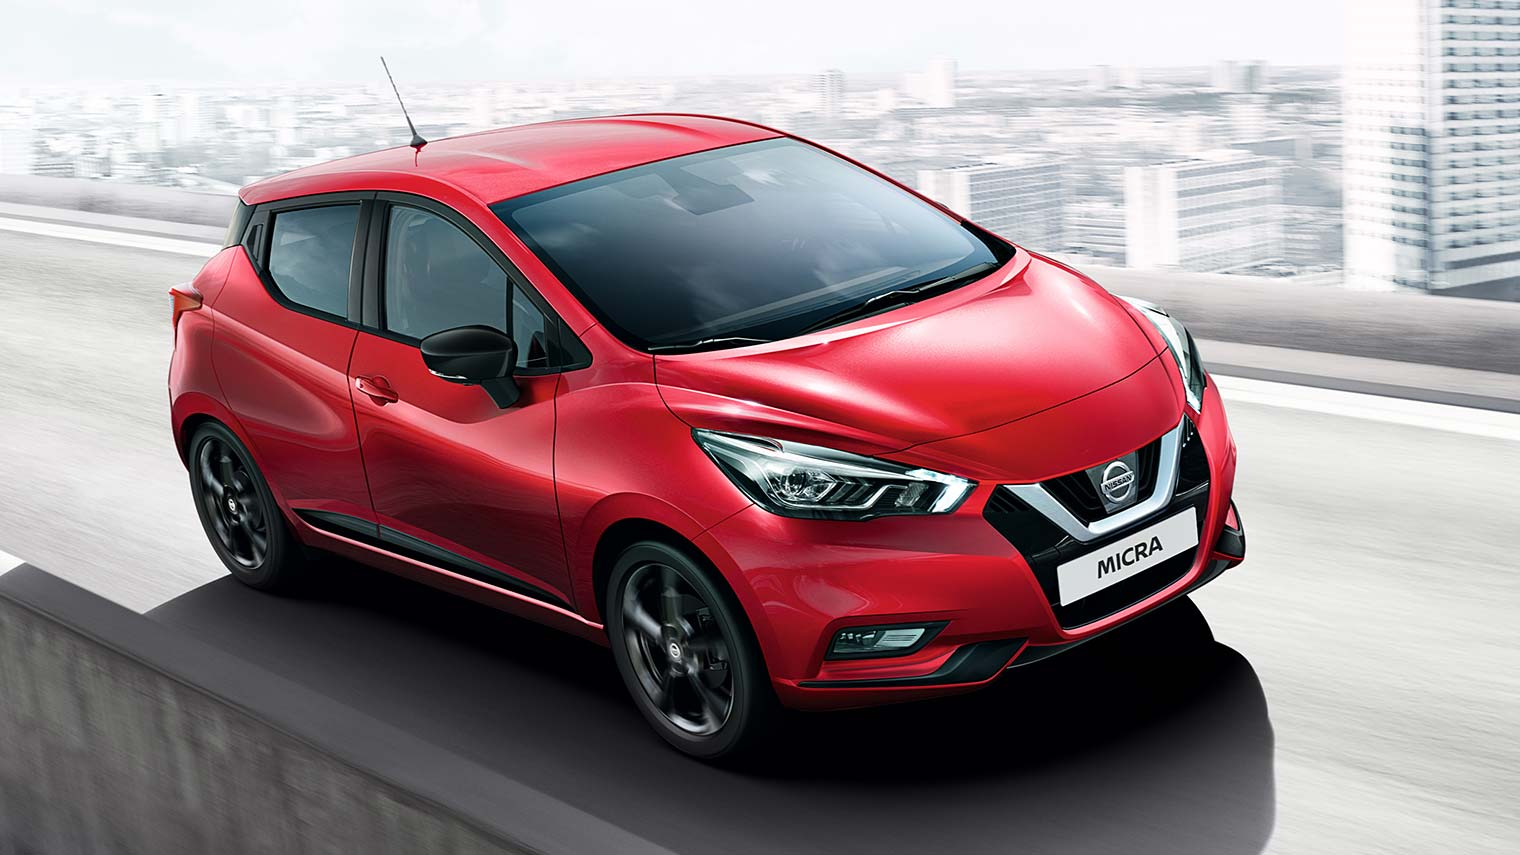 Nissan Qashqai Private Lease Nissan Aanbiedingen Anwb Private Lease